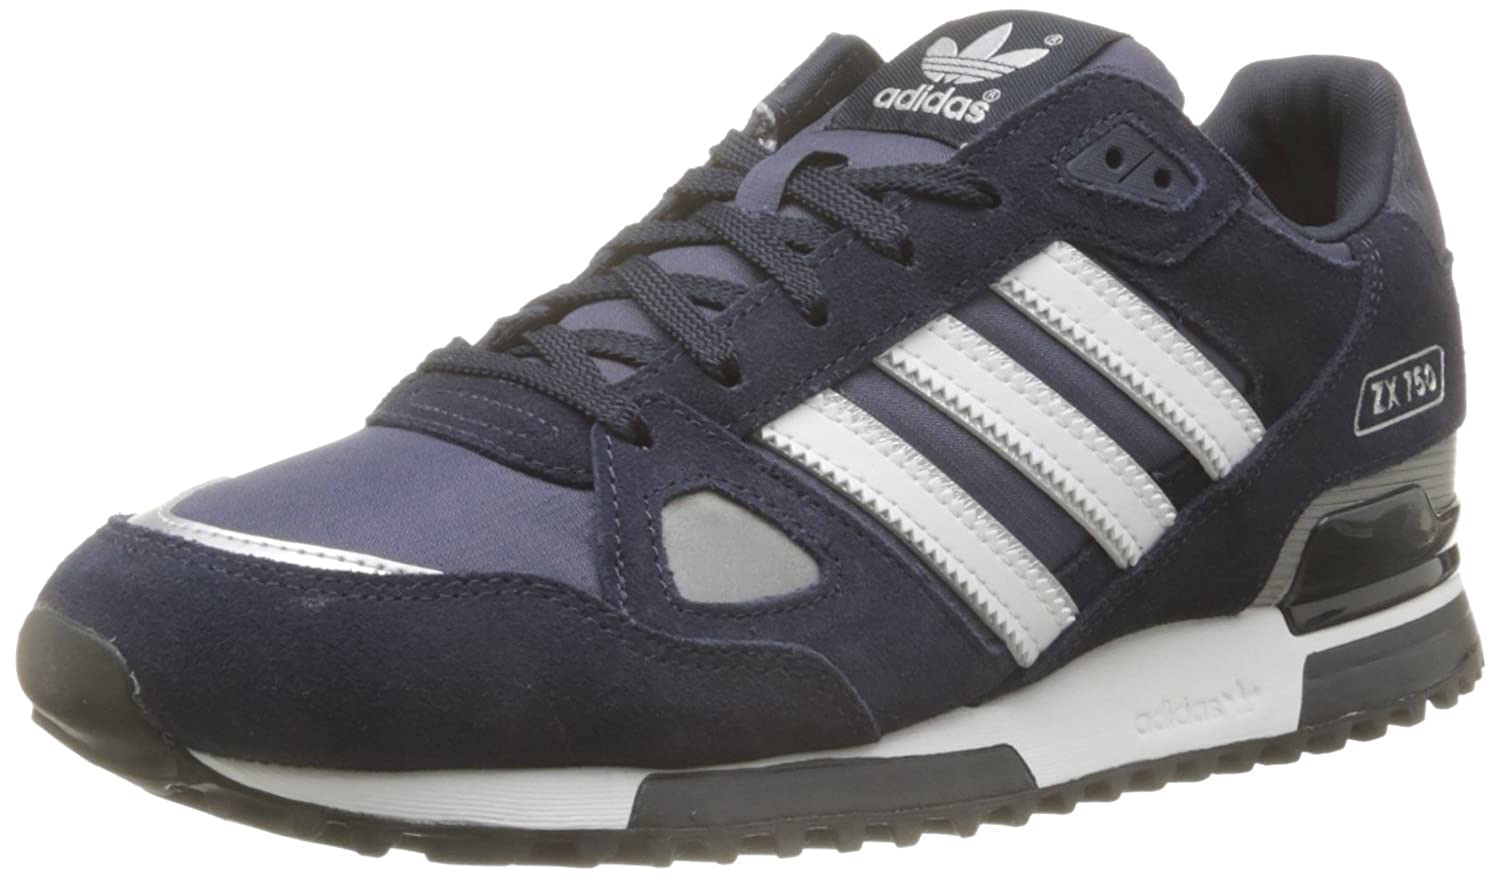 chaussures de séparation 7d685 93008 Adidas Originals ZX 750 Sports Casual Shoes Men's Trainers